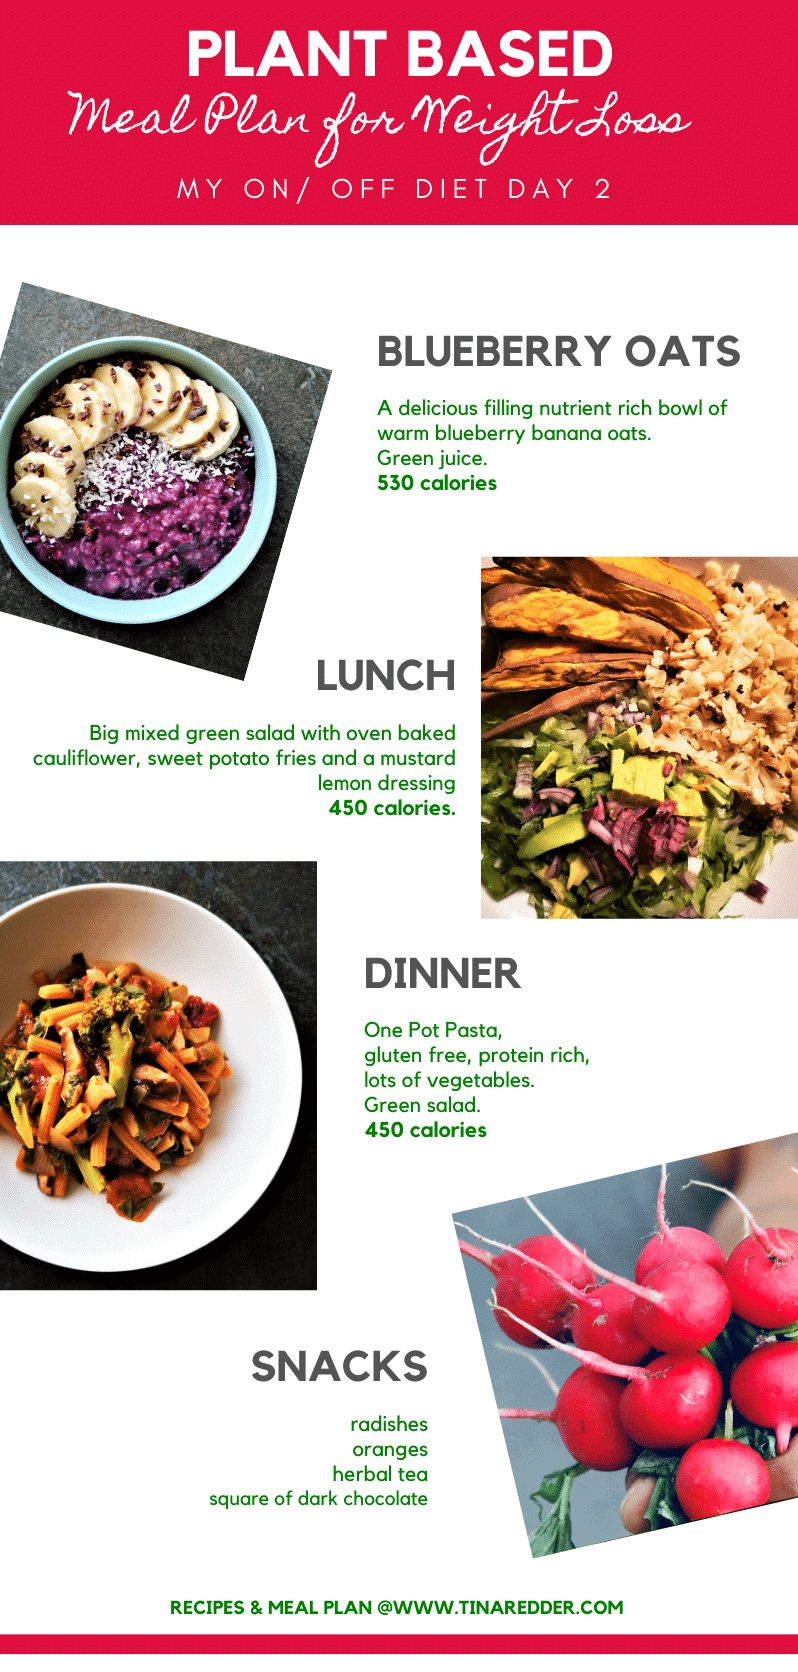 plant based meal plan for weight loss 2